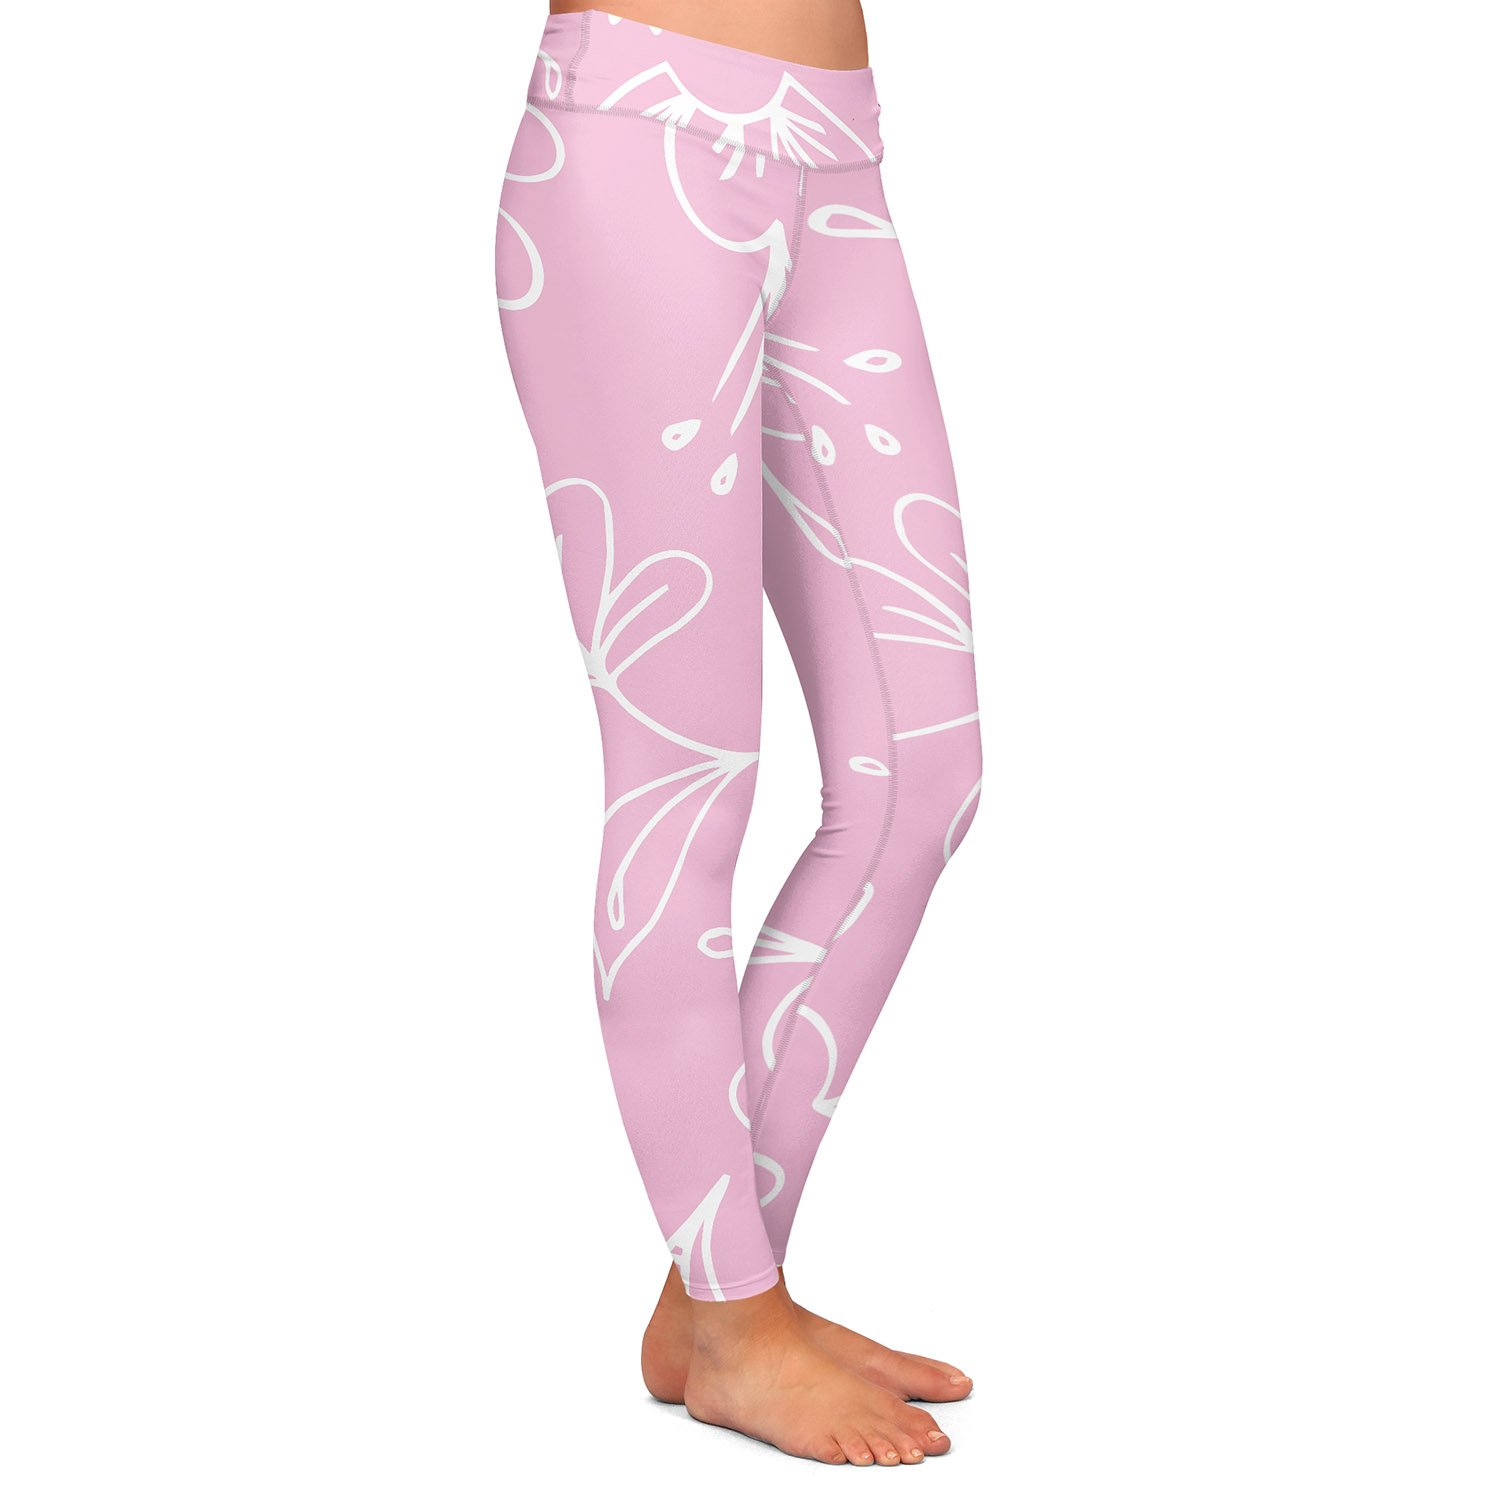 Pink Flora Mix Athletic Yoga Leggings from DiaNoche Designs by Zara Martina